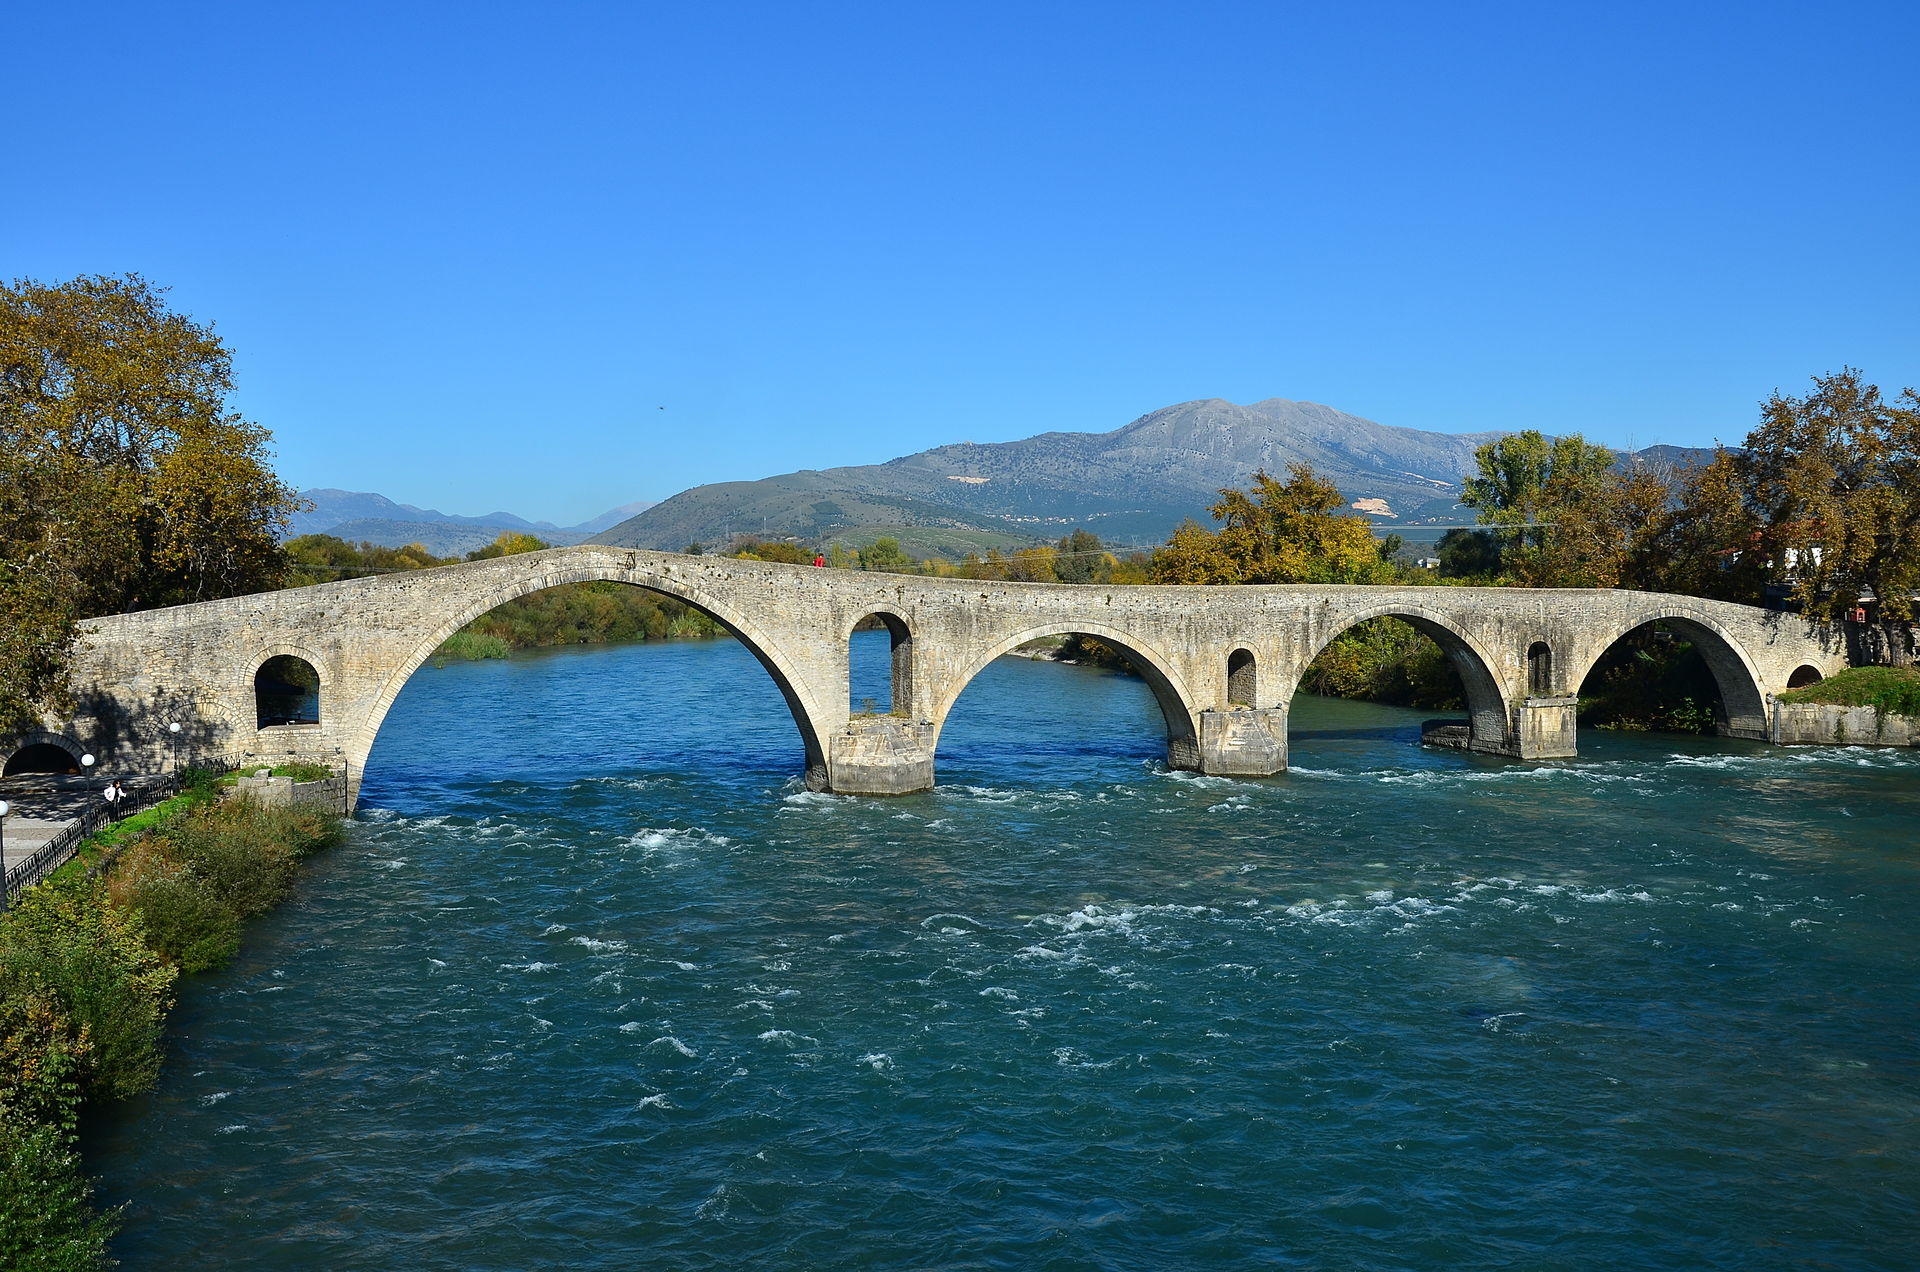 Arta Greece Wikipedia